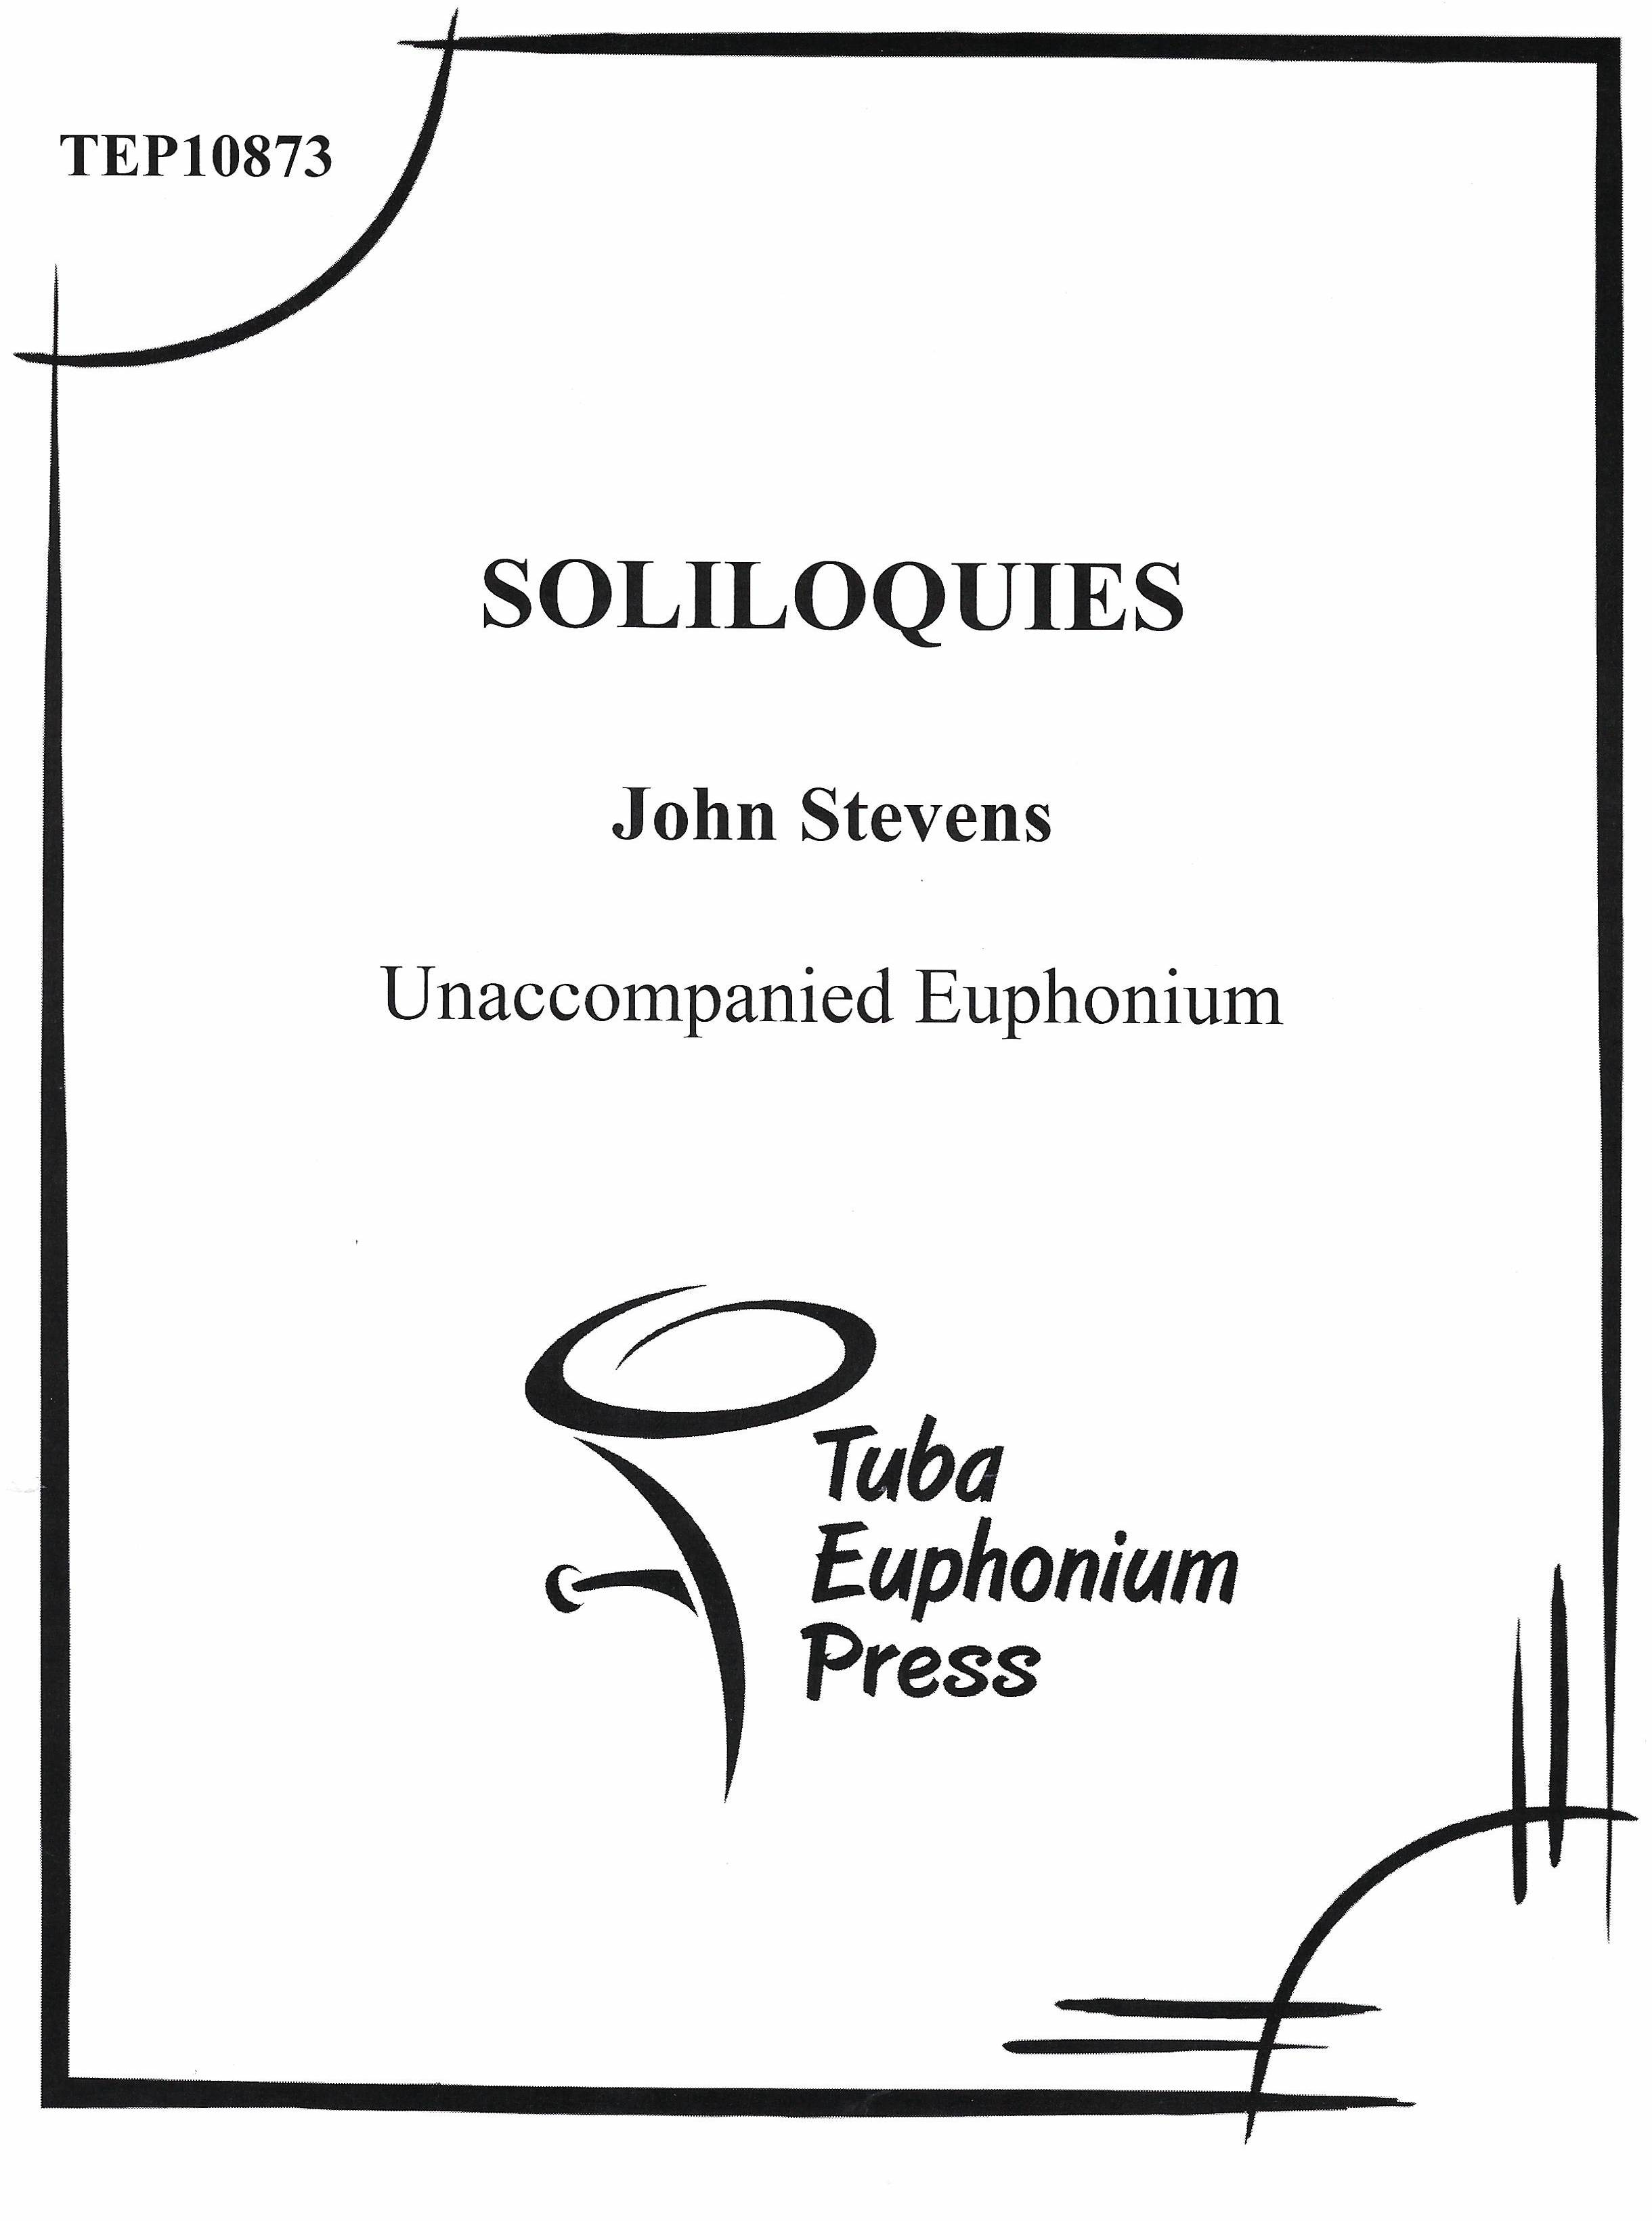 soliloquies cover